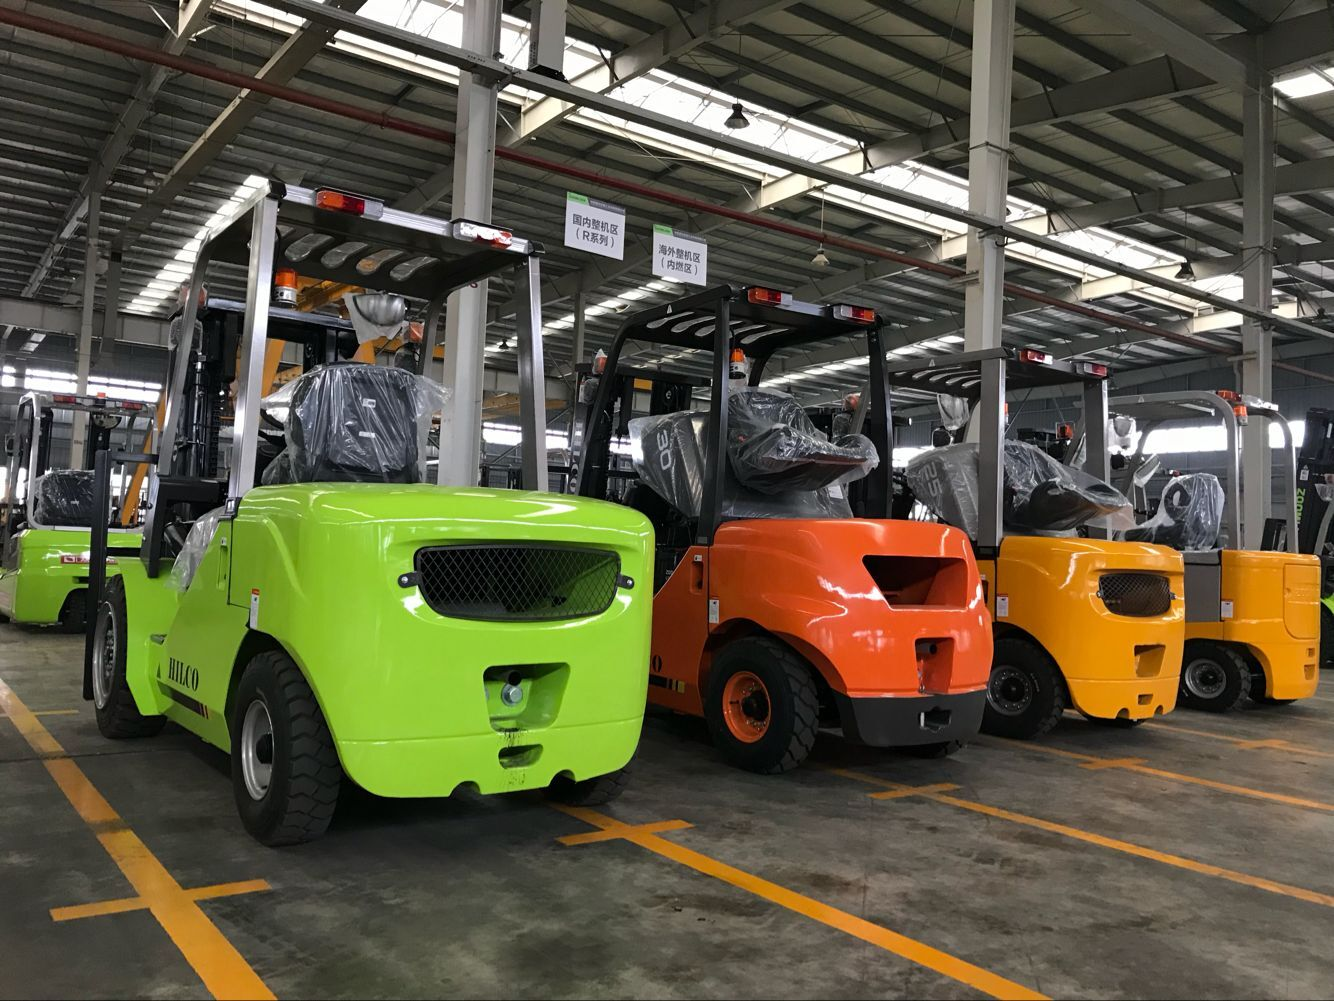 China Supper Forklift Supplier: 一月2018